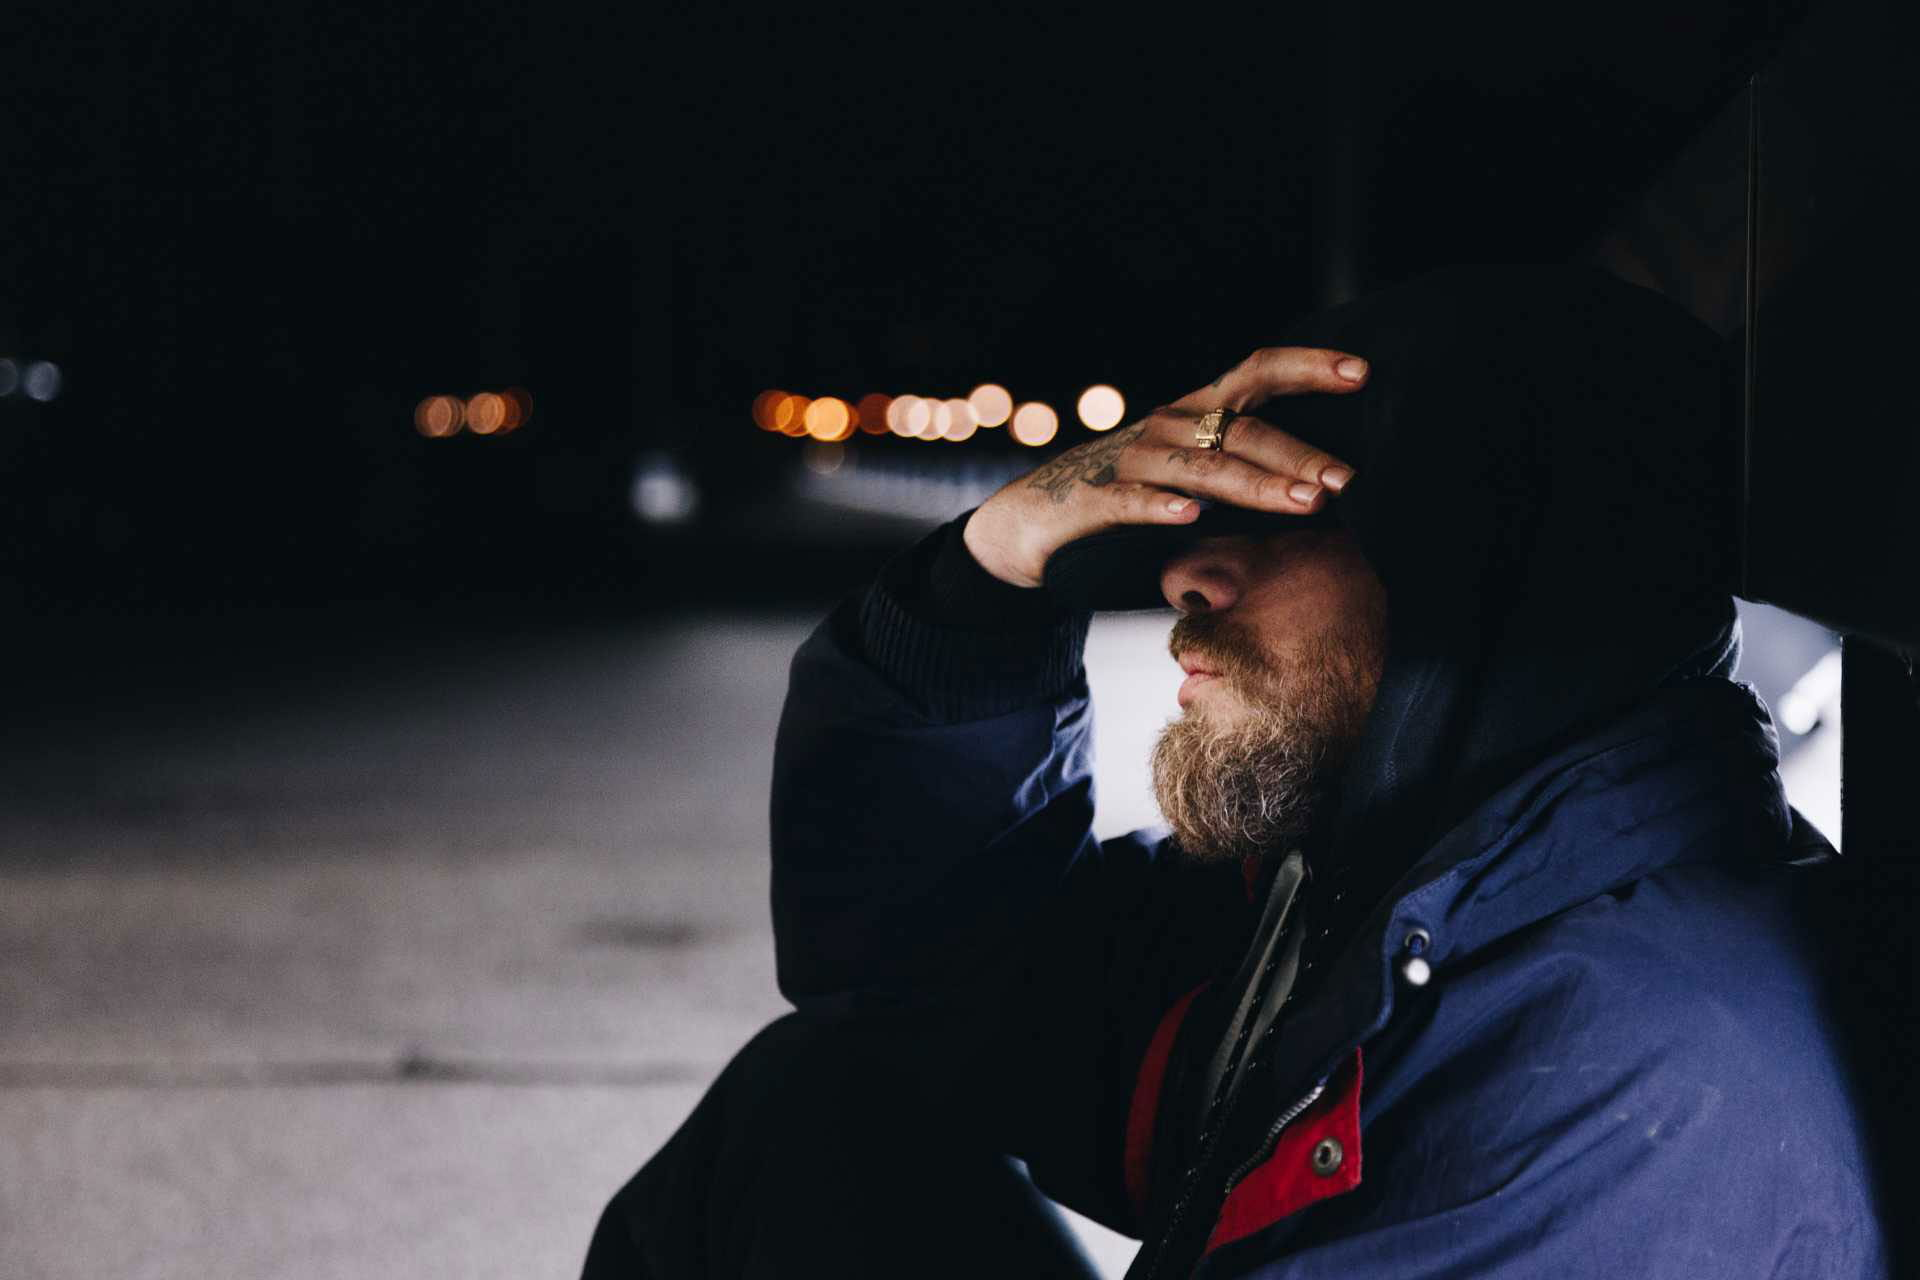 stressed man sitting on ground with hand on head